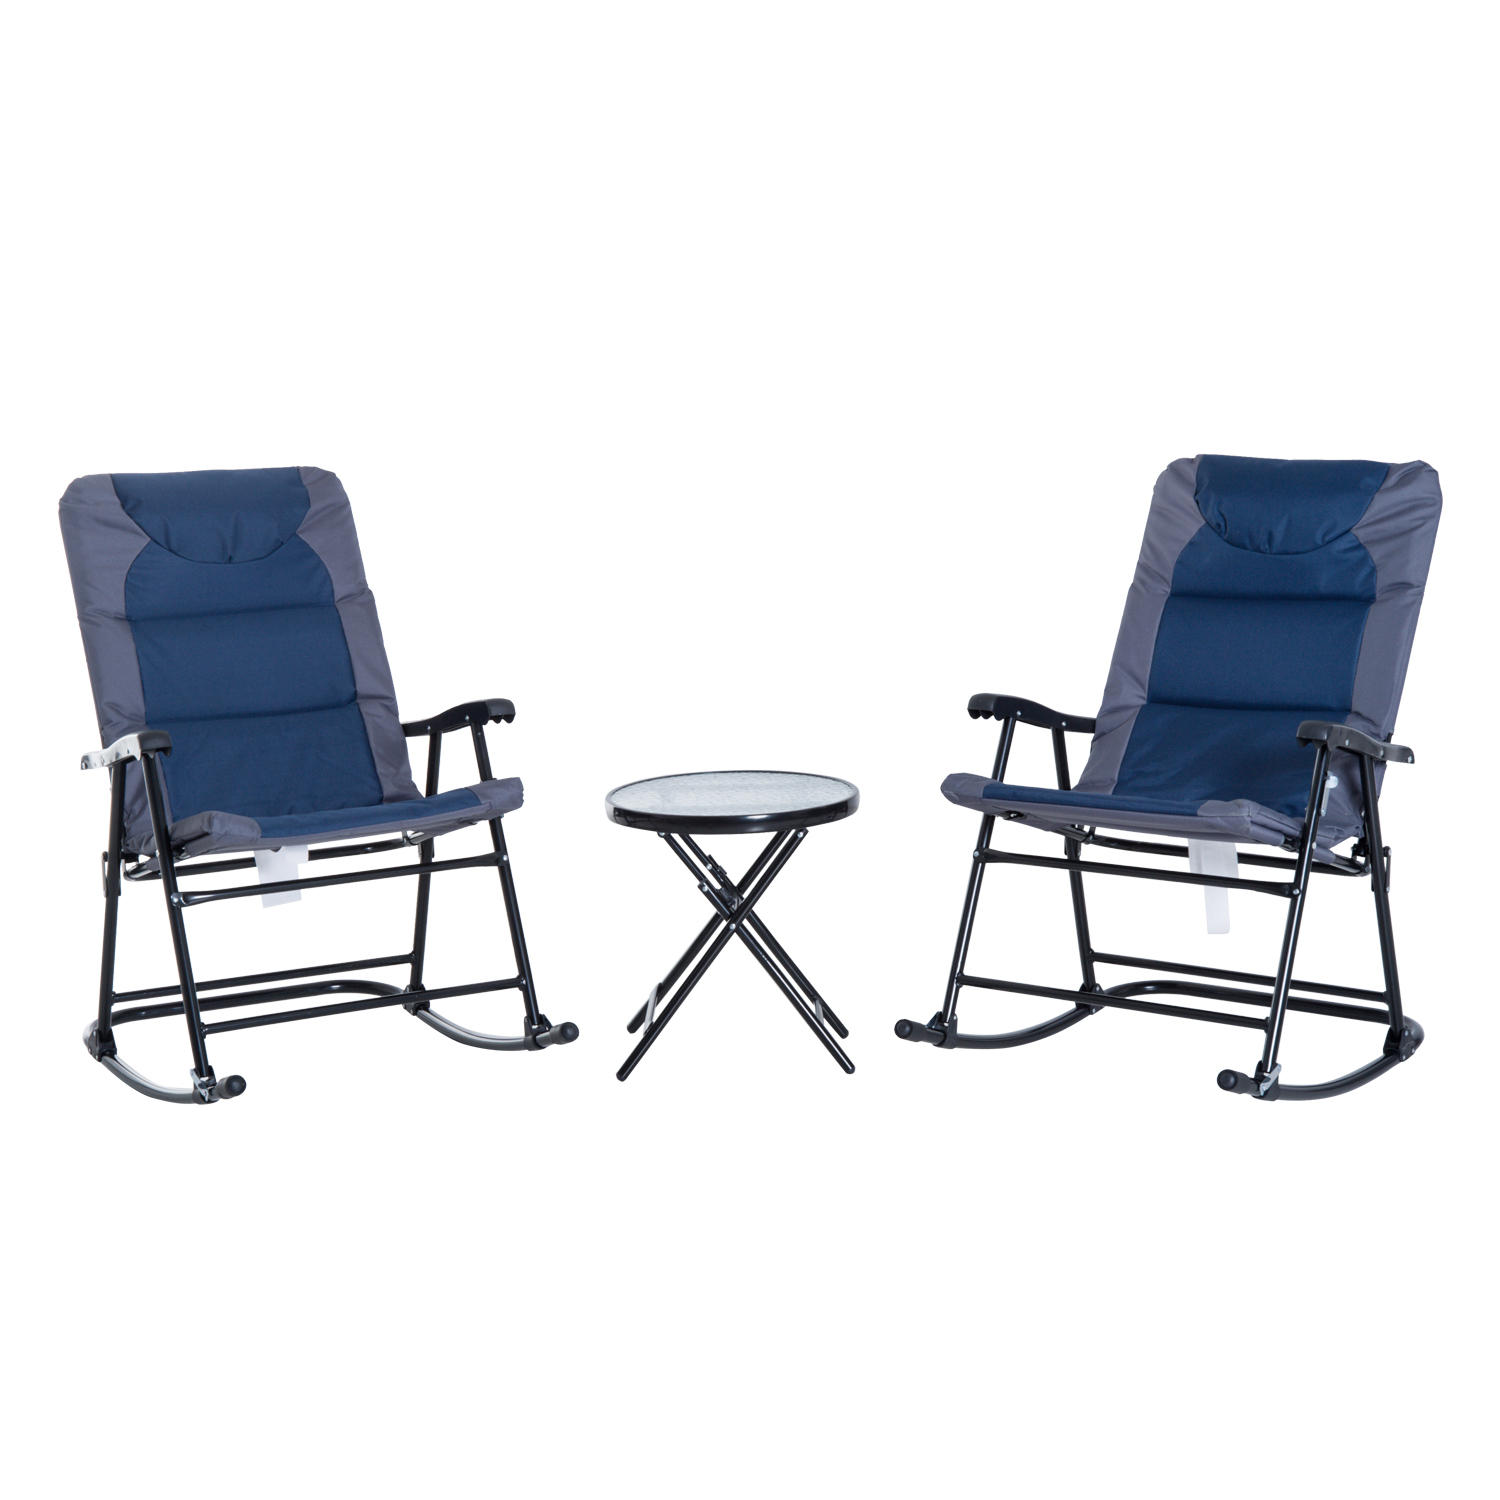 Image of £72.99 Outsunny 3 Pcs Rocker Bistro, Steel-Dark Blue/Grey / PC Bistro Set Metal Rocking Chairs Folding Round Table Portable Armrest Seat Garden Outdoor Furniture Pieces Lounger Fold Glider Backyard 84B-201 5056029888988